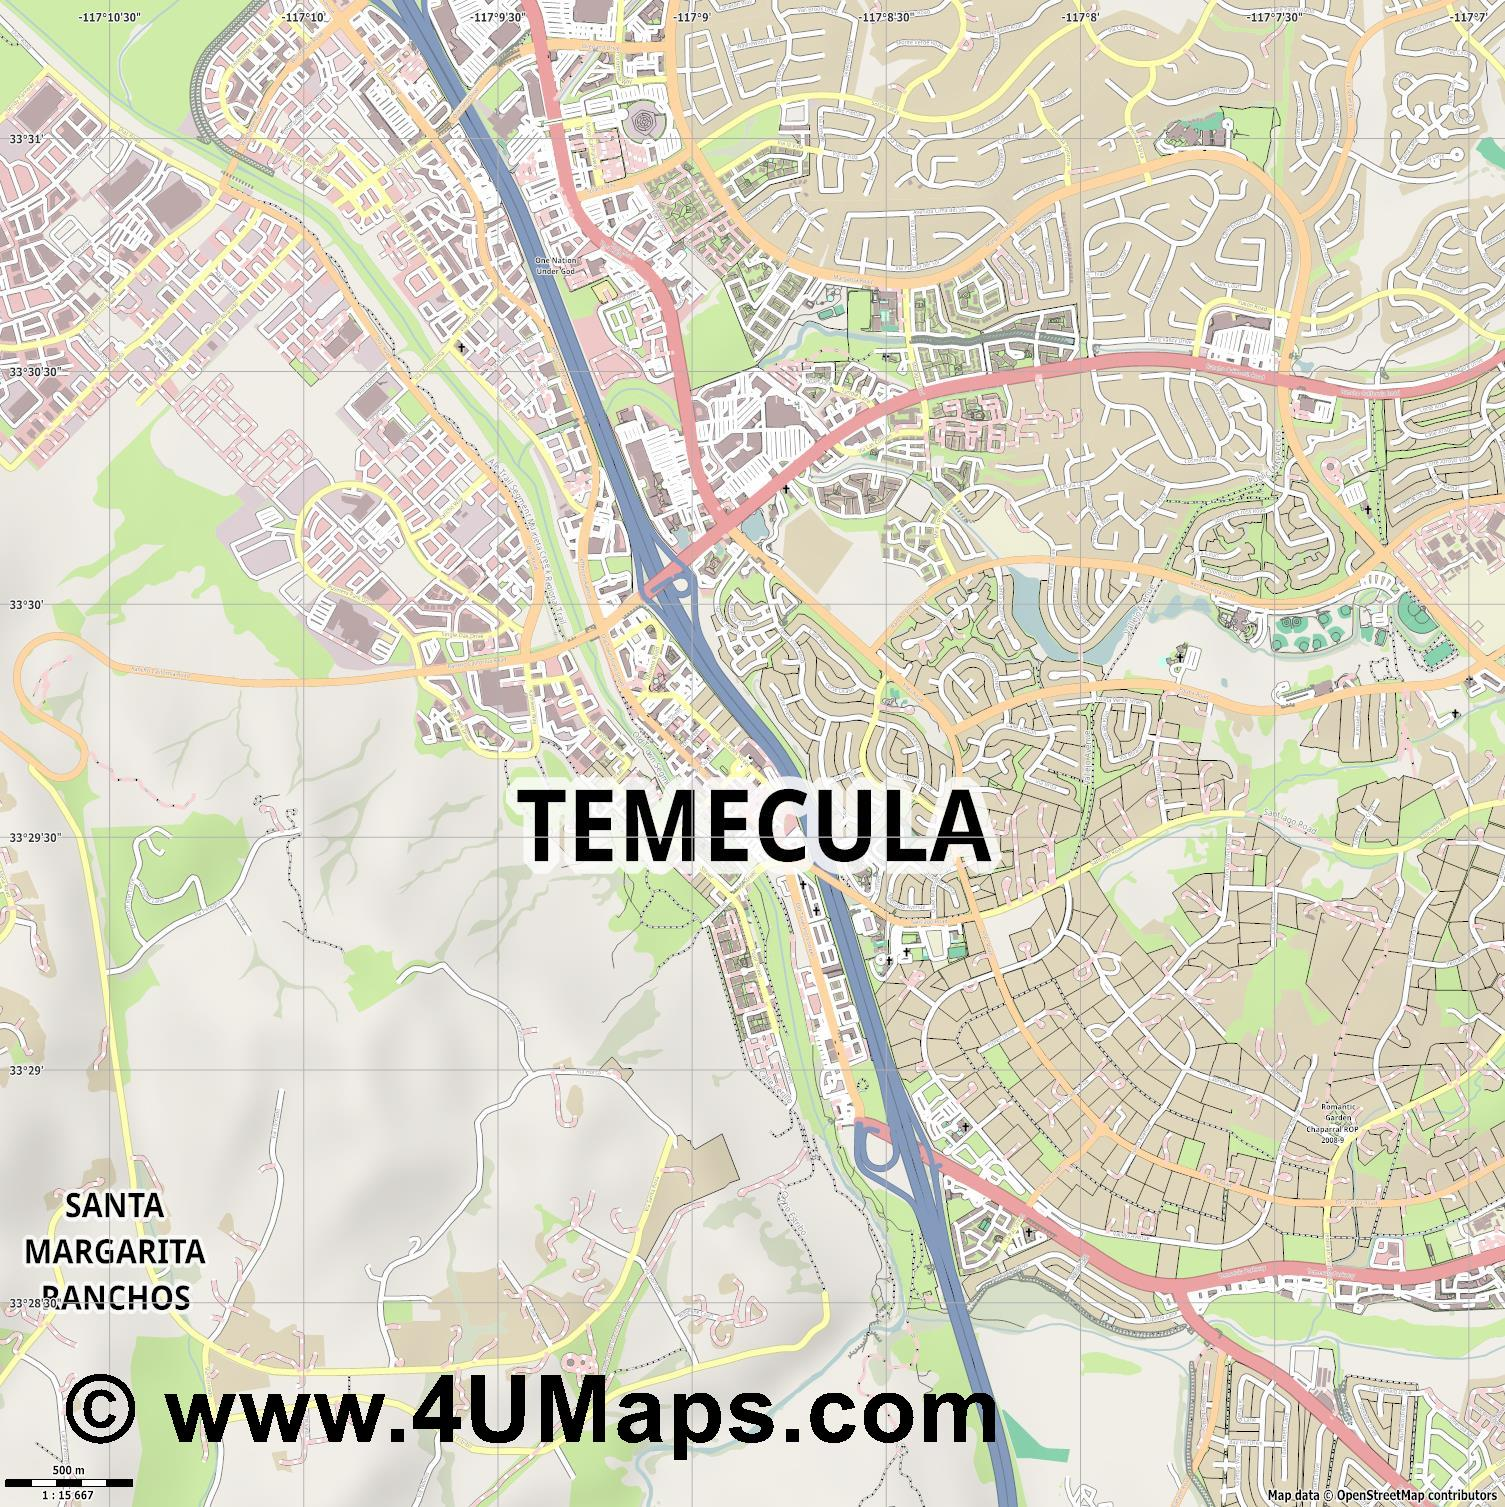 Temecula  jpg ultra high detail preview vector city map